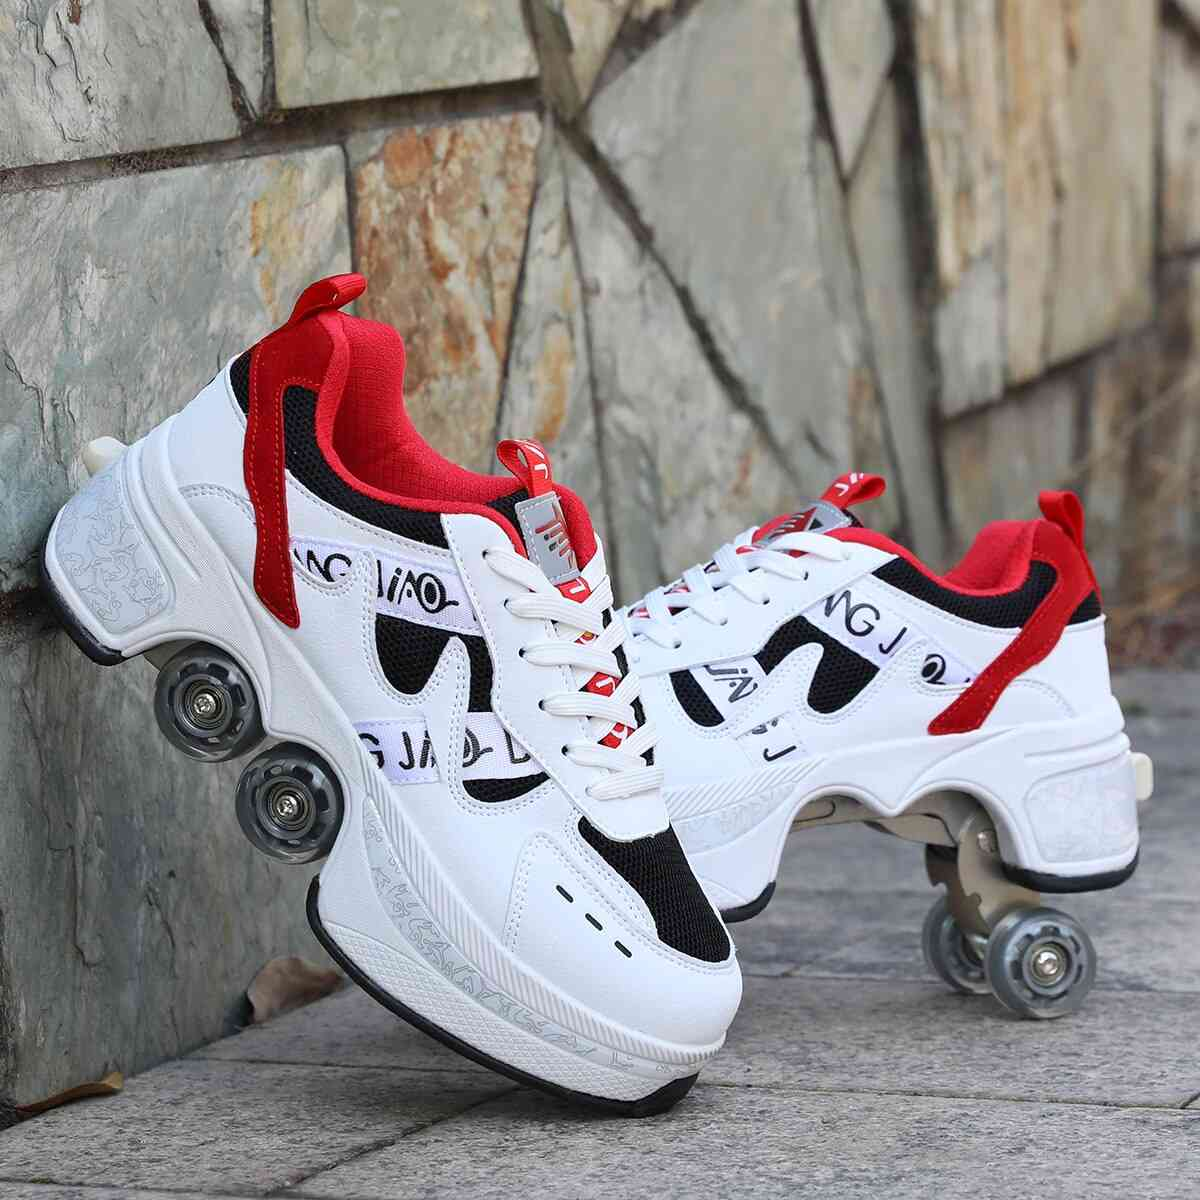 Leather 4 Wheels Double Line Roller Skates Shoes - Red